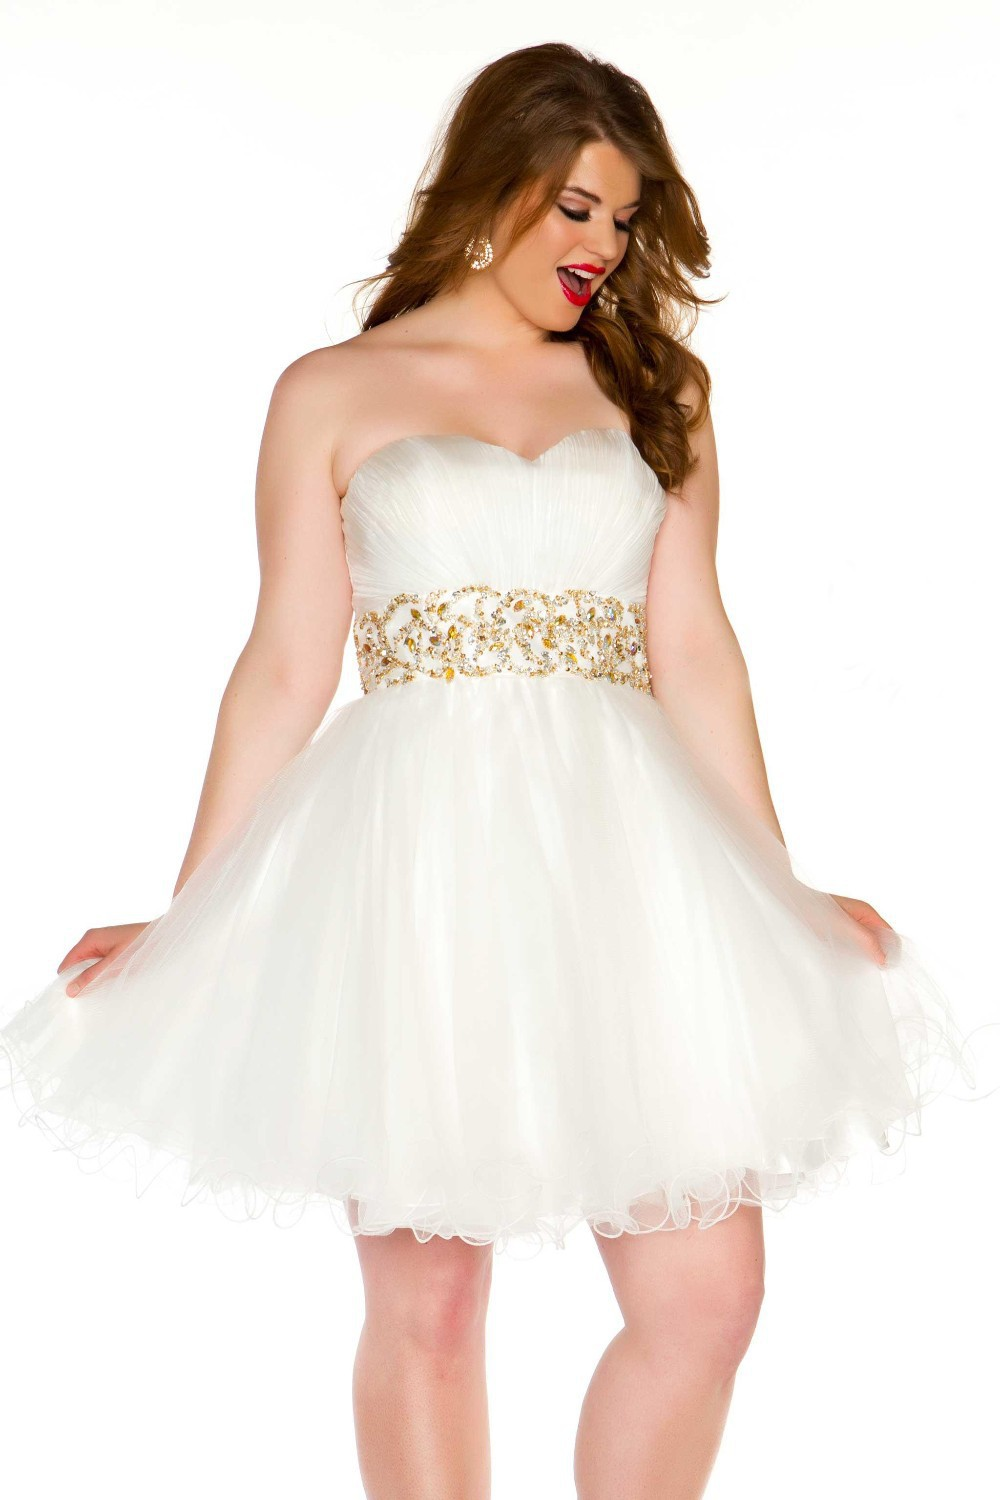 Juniors Plus Size Prom Dresses - Ocodea.com